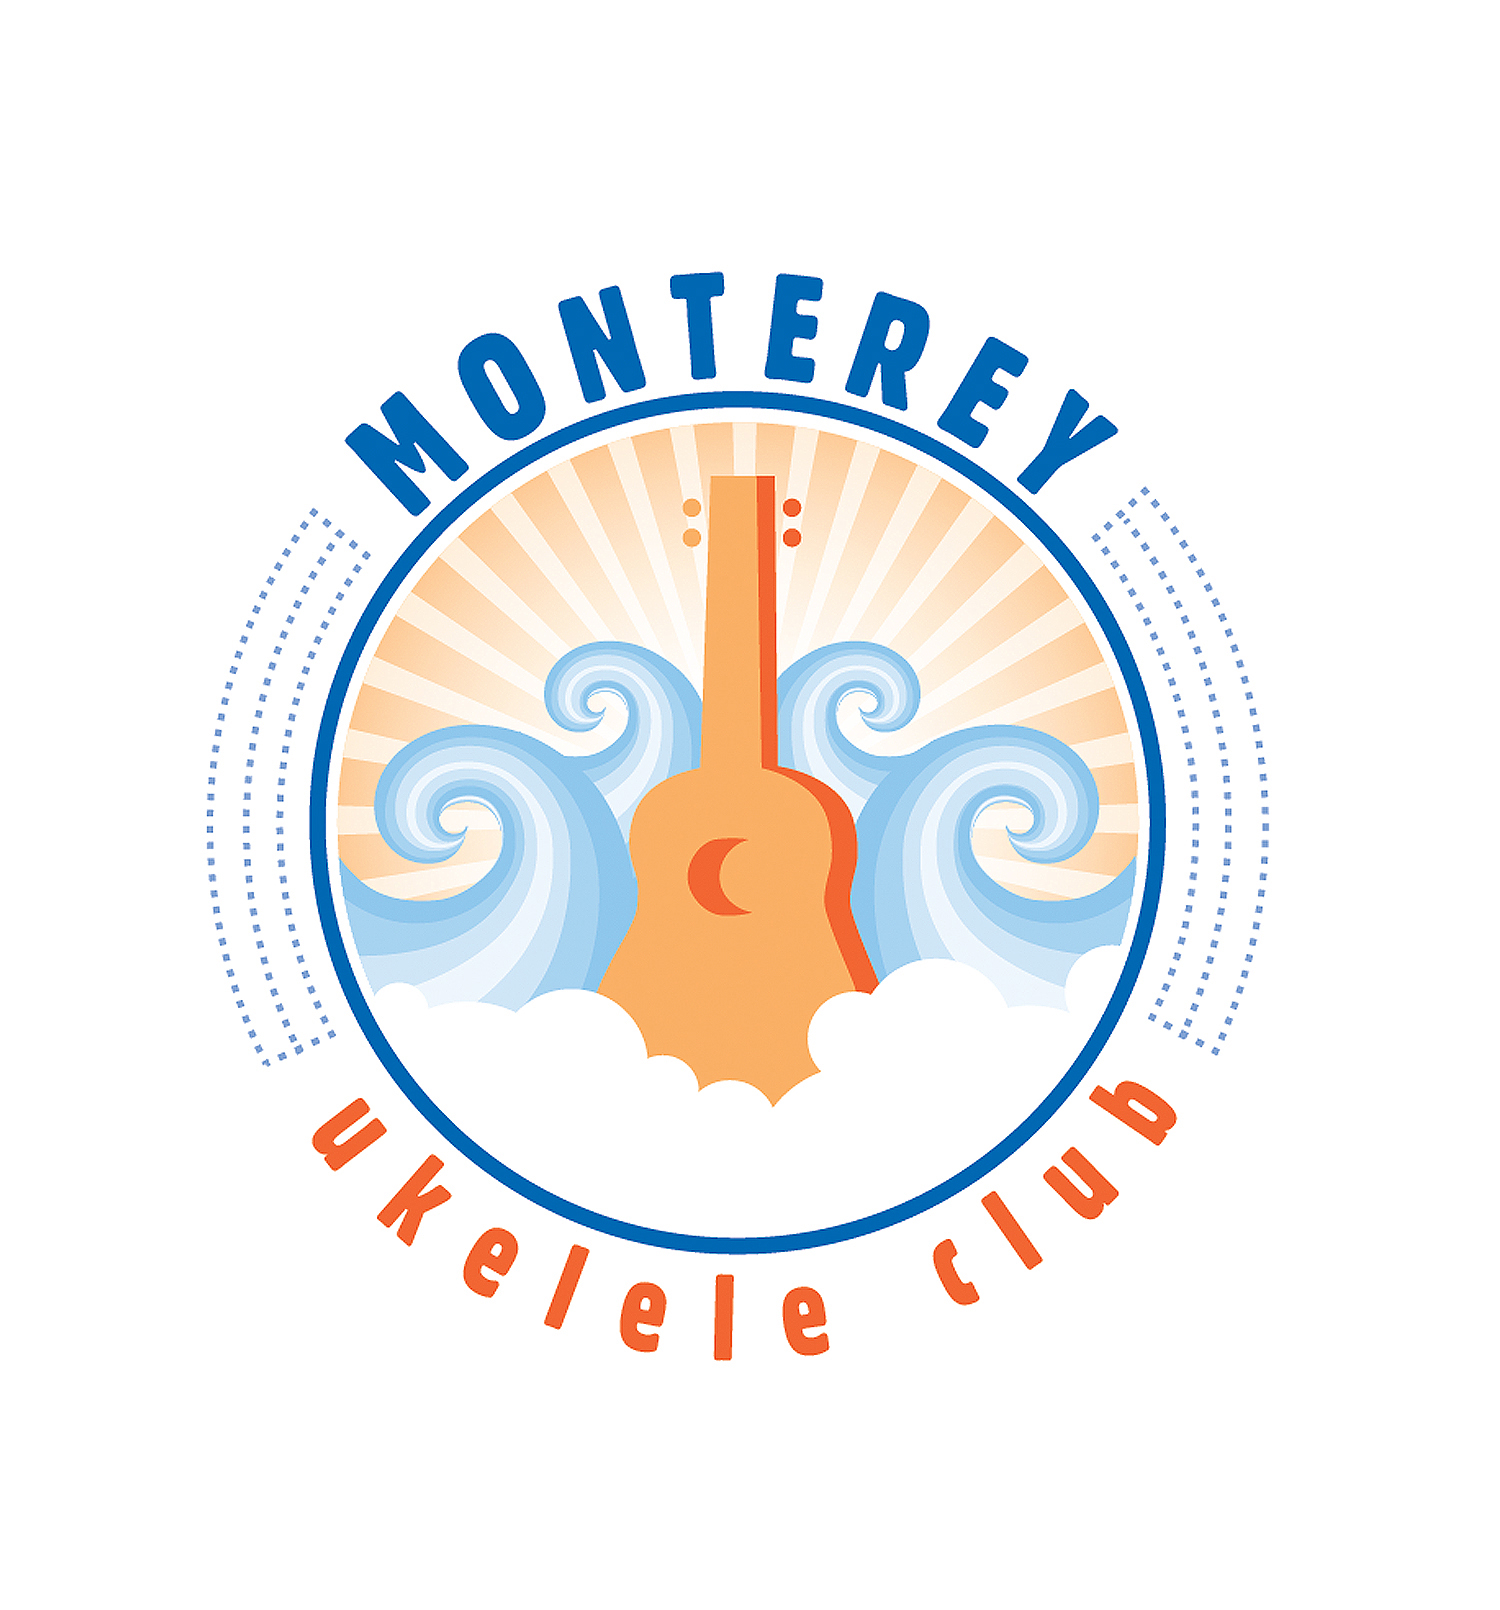 UKES BY THE SEA LOGO CONCEPT   |   Monterey Ukulele Club